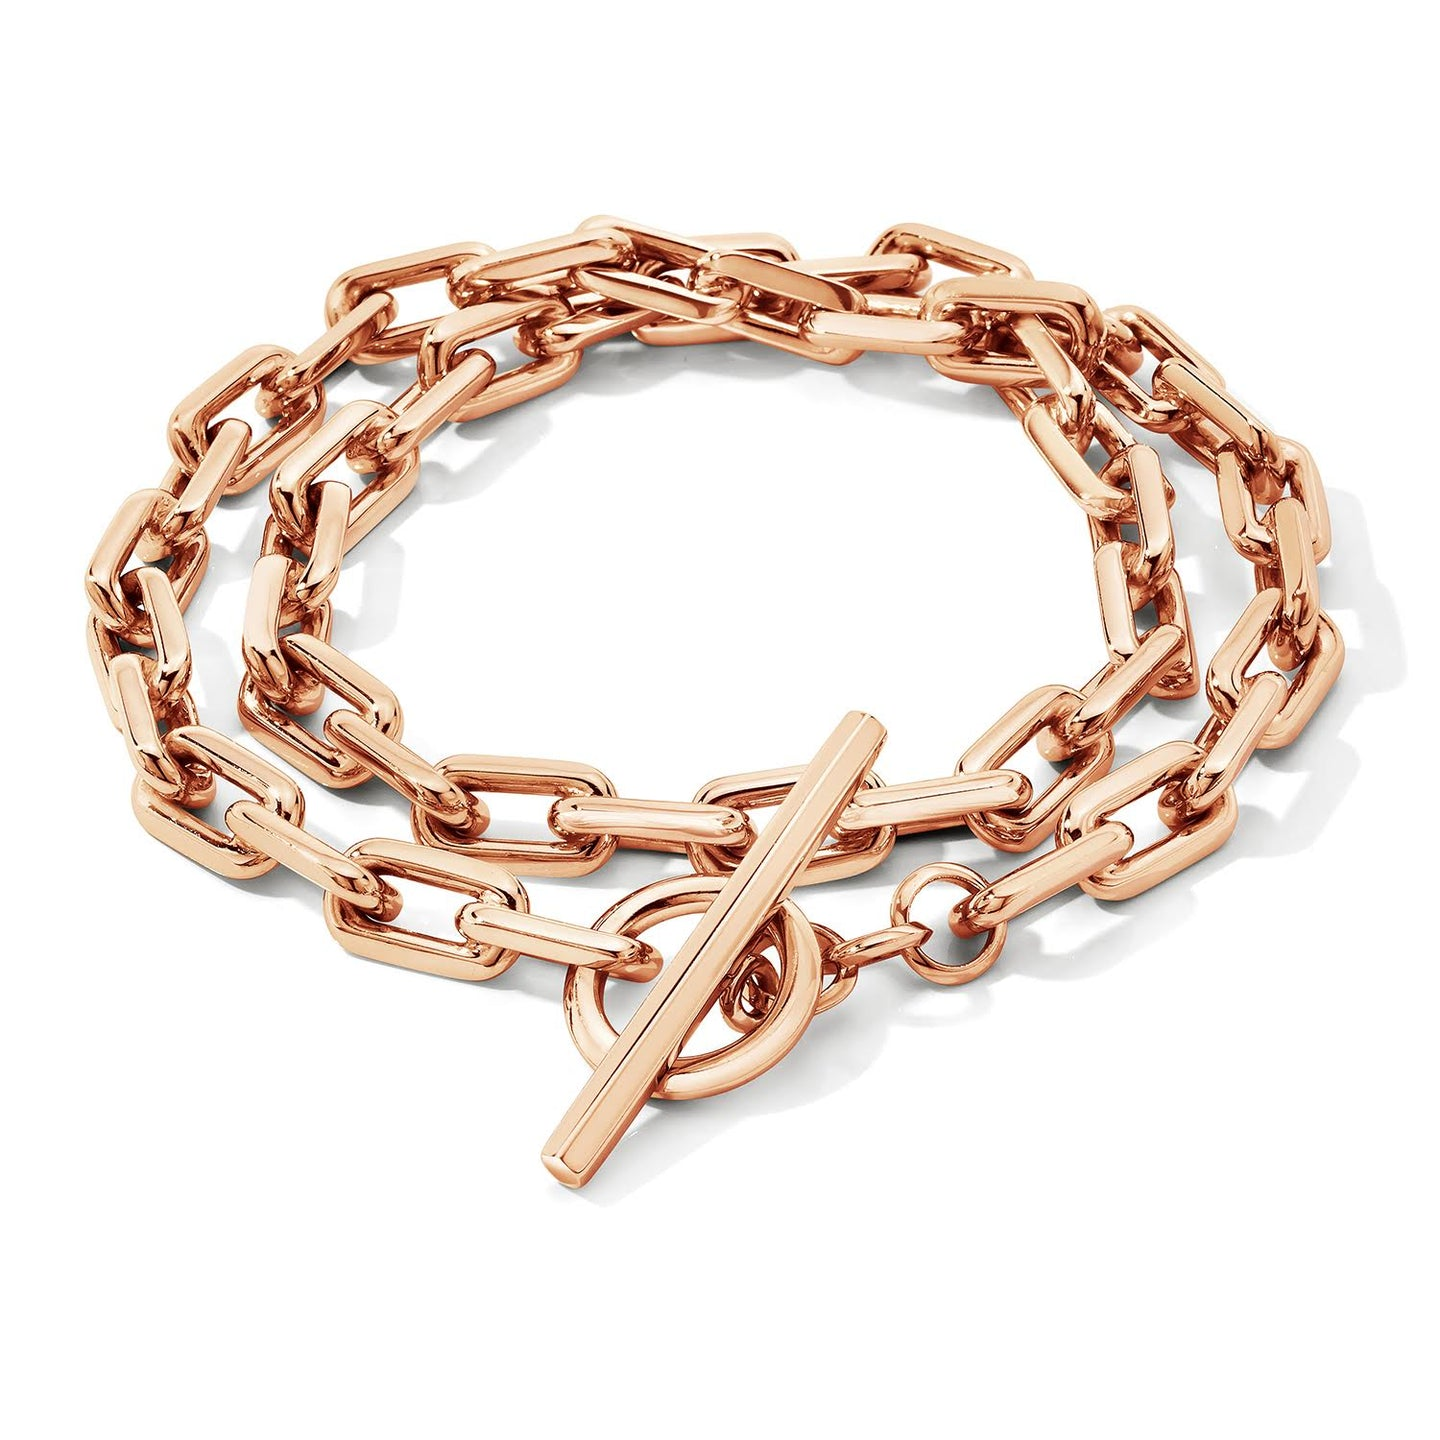 SAXON 18K DOUBLE WRAP CHAIN LINK TOGGLE BRACELET